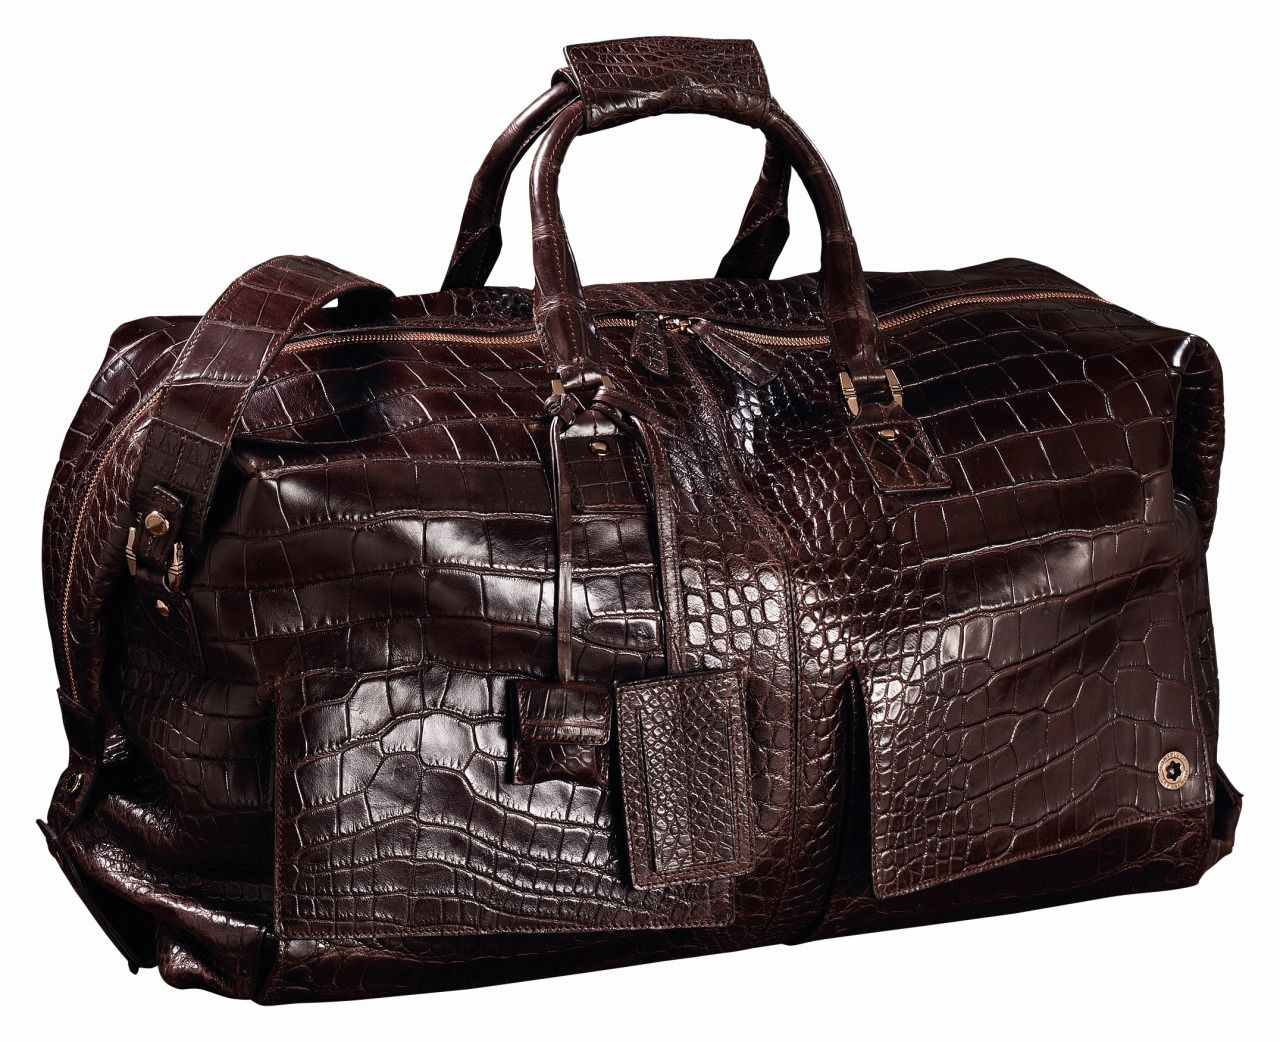 2e6d627c8 Montblanc alligator travel bag | Things I Love(d) | Mens luggage ...